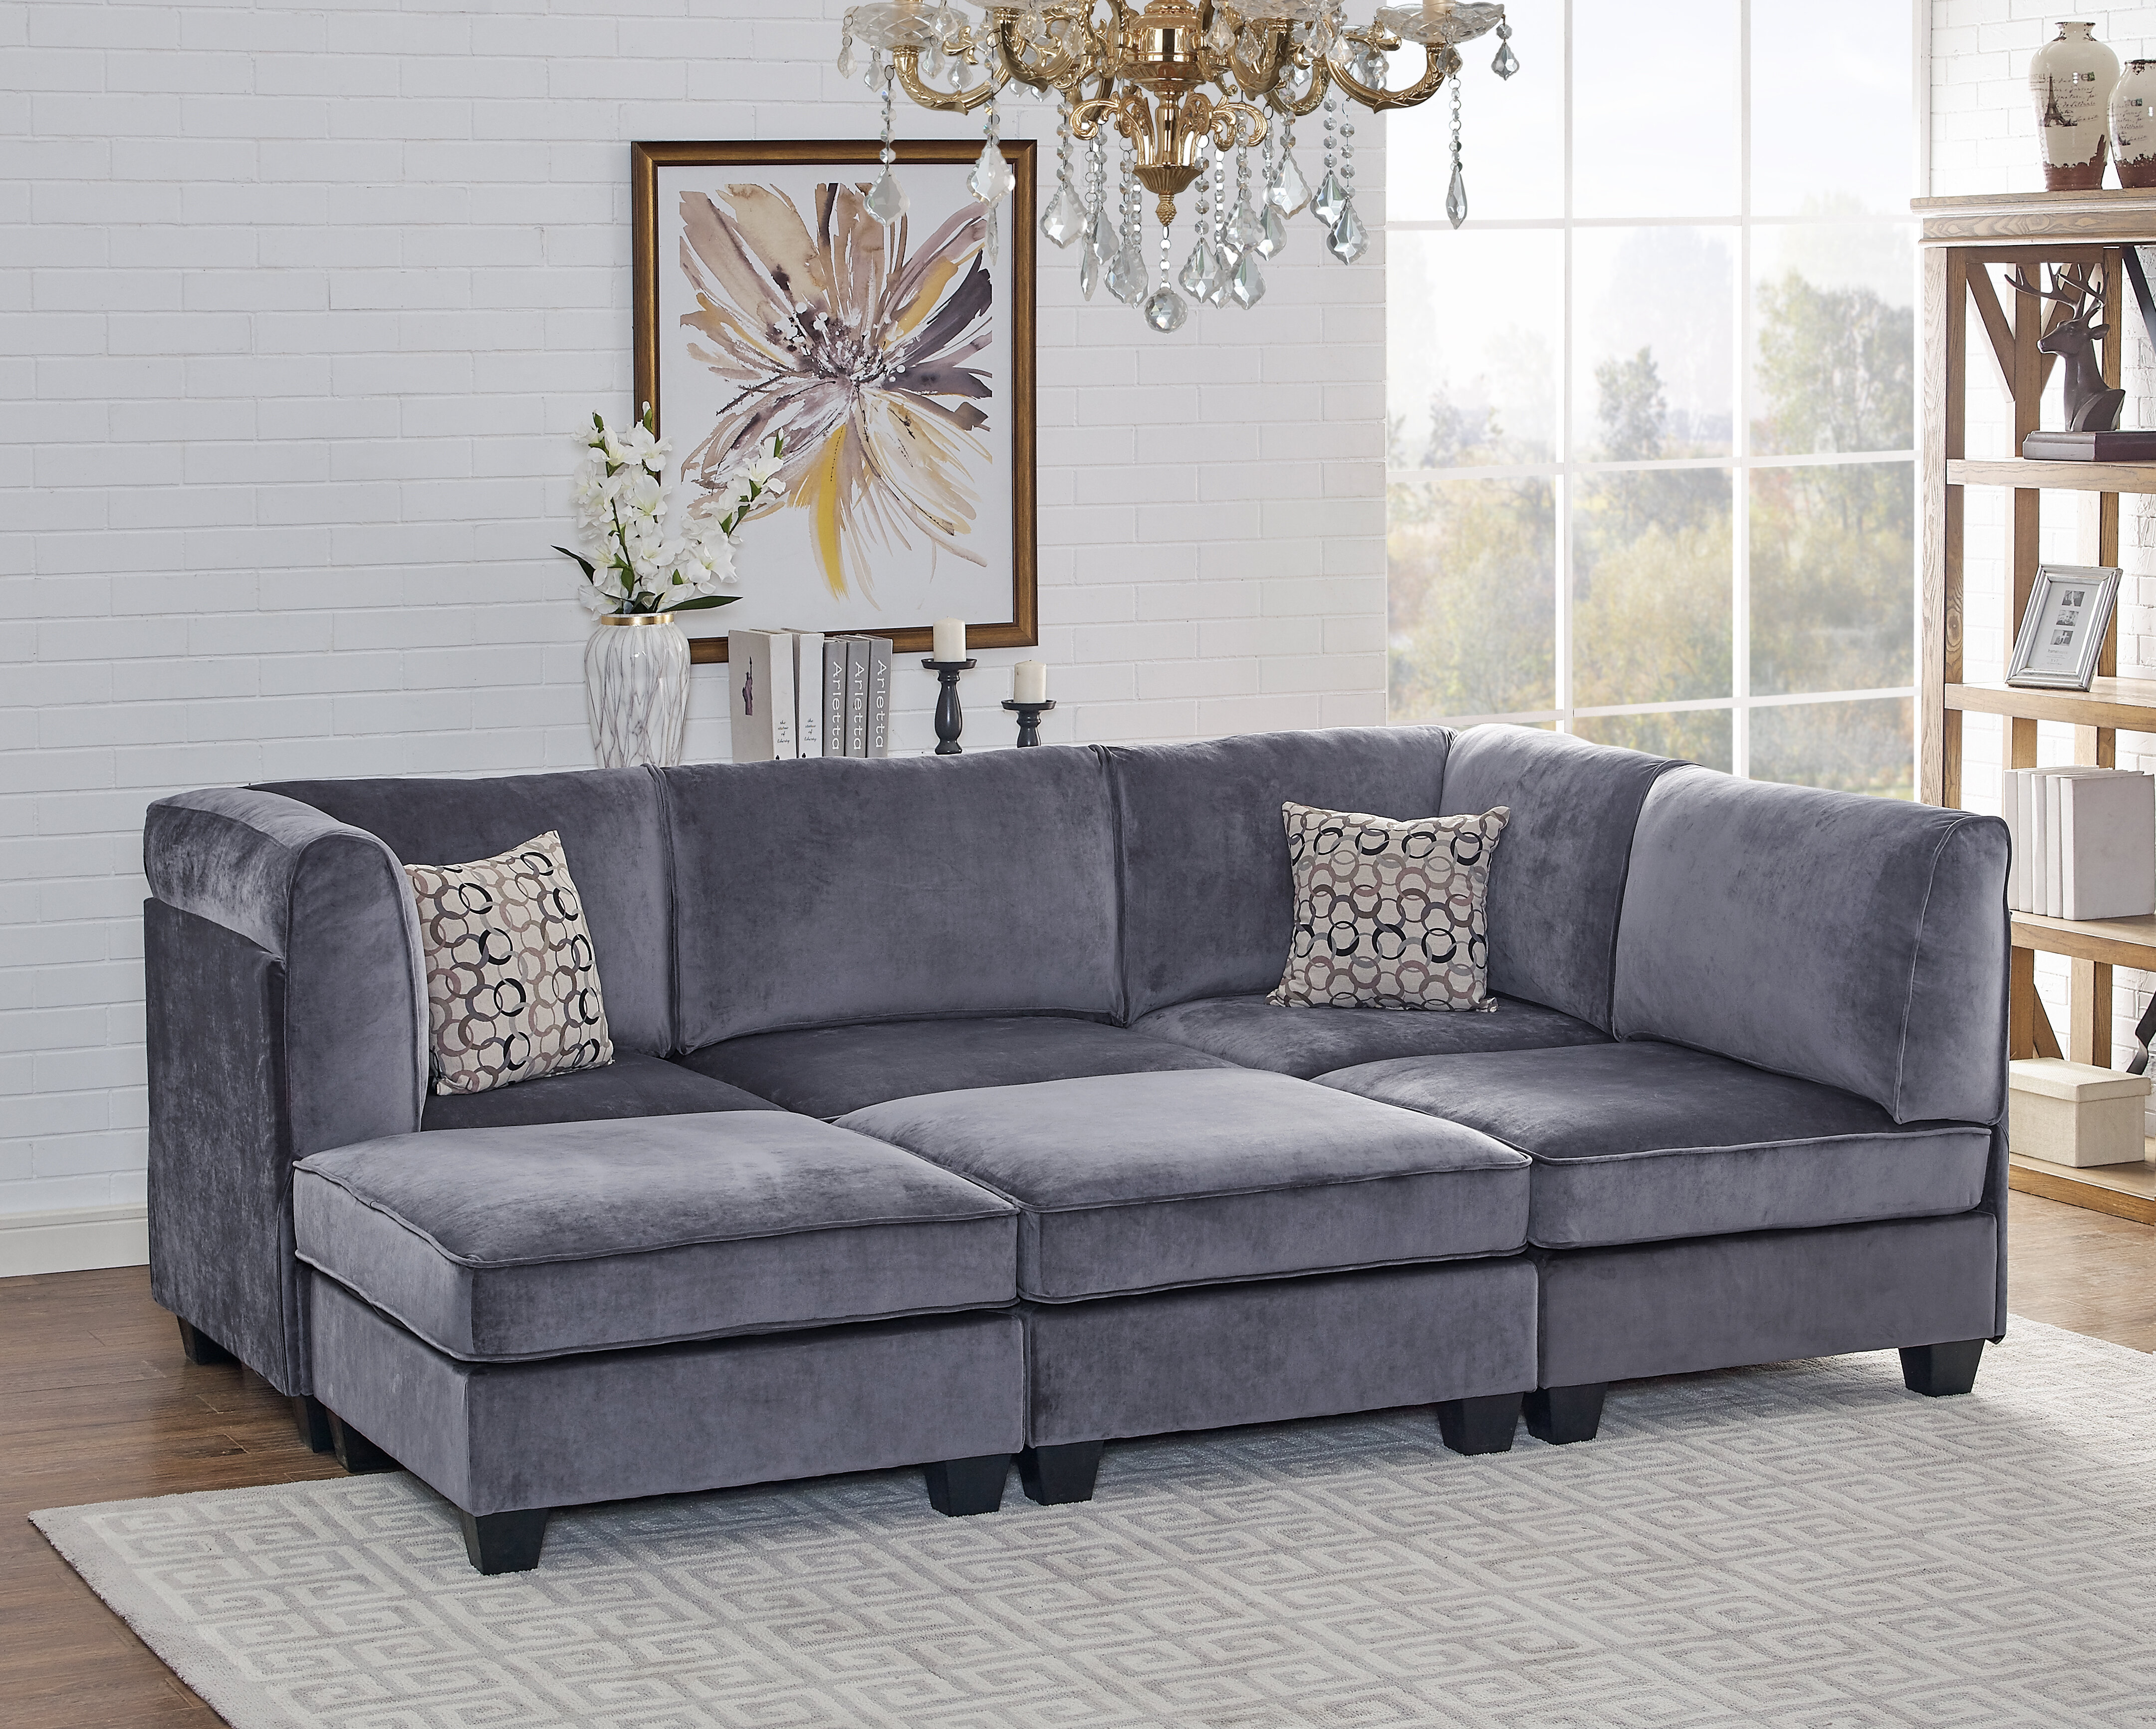 Ivy Bronx Marylou Modular Velvet Sofa Set | Wayfair